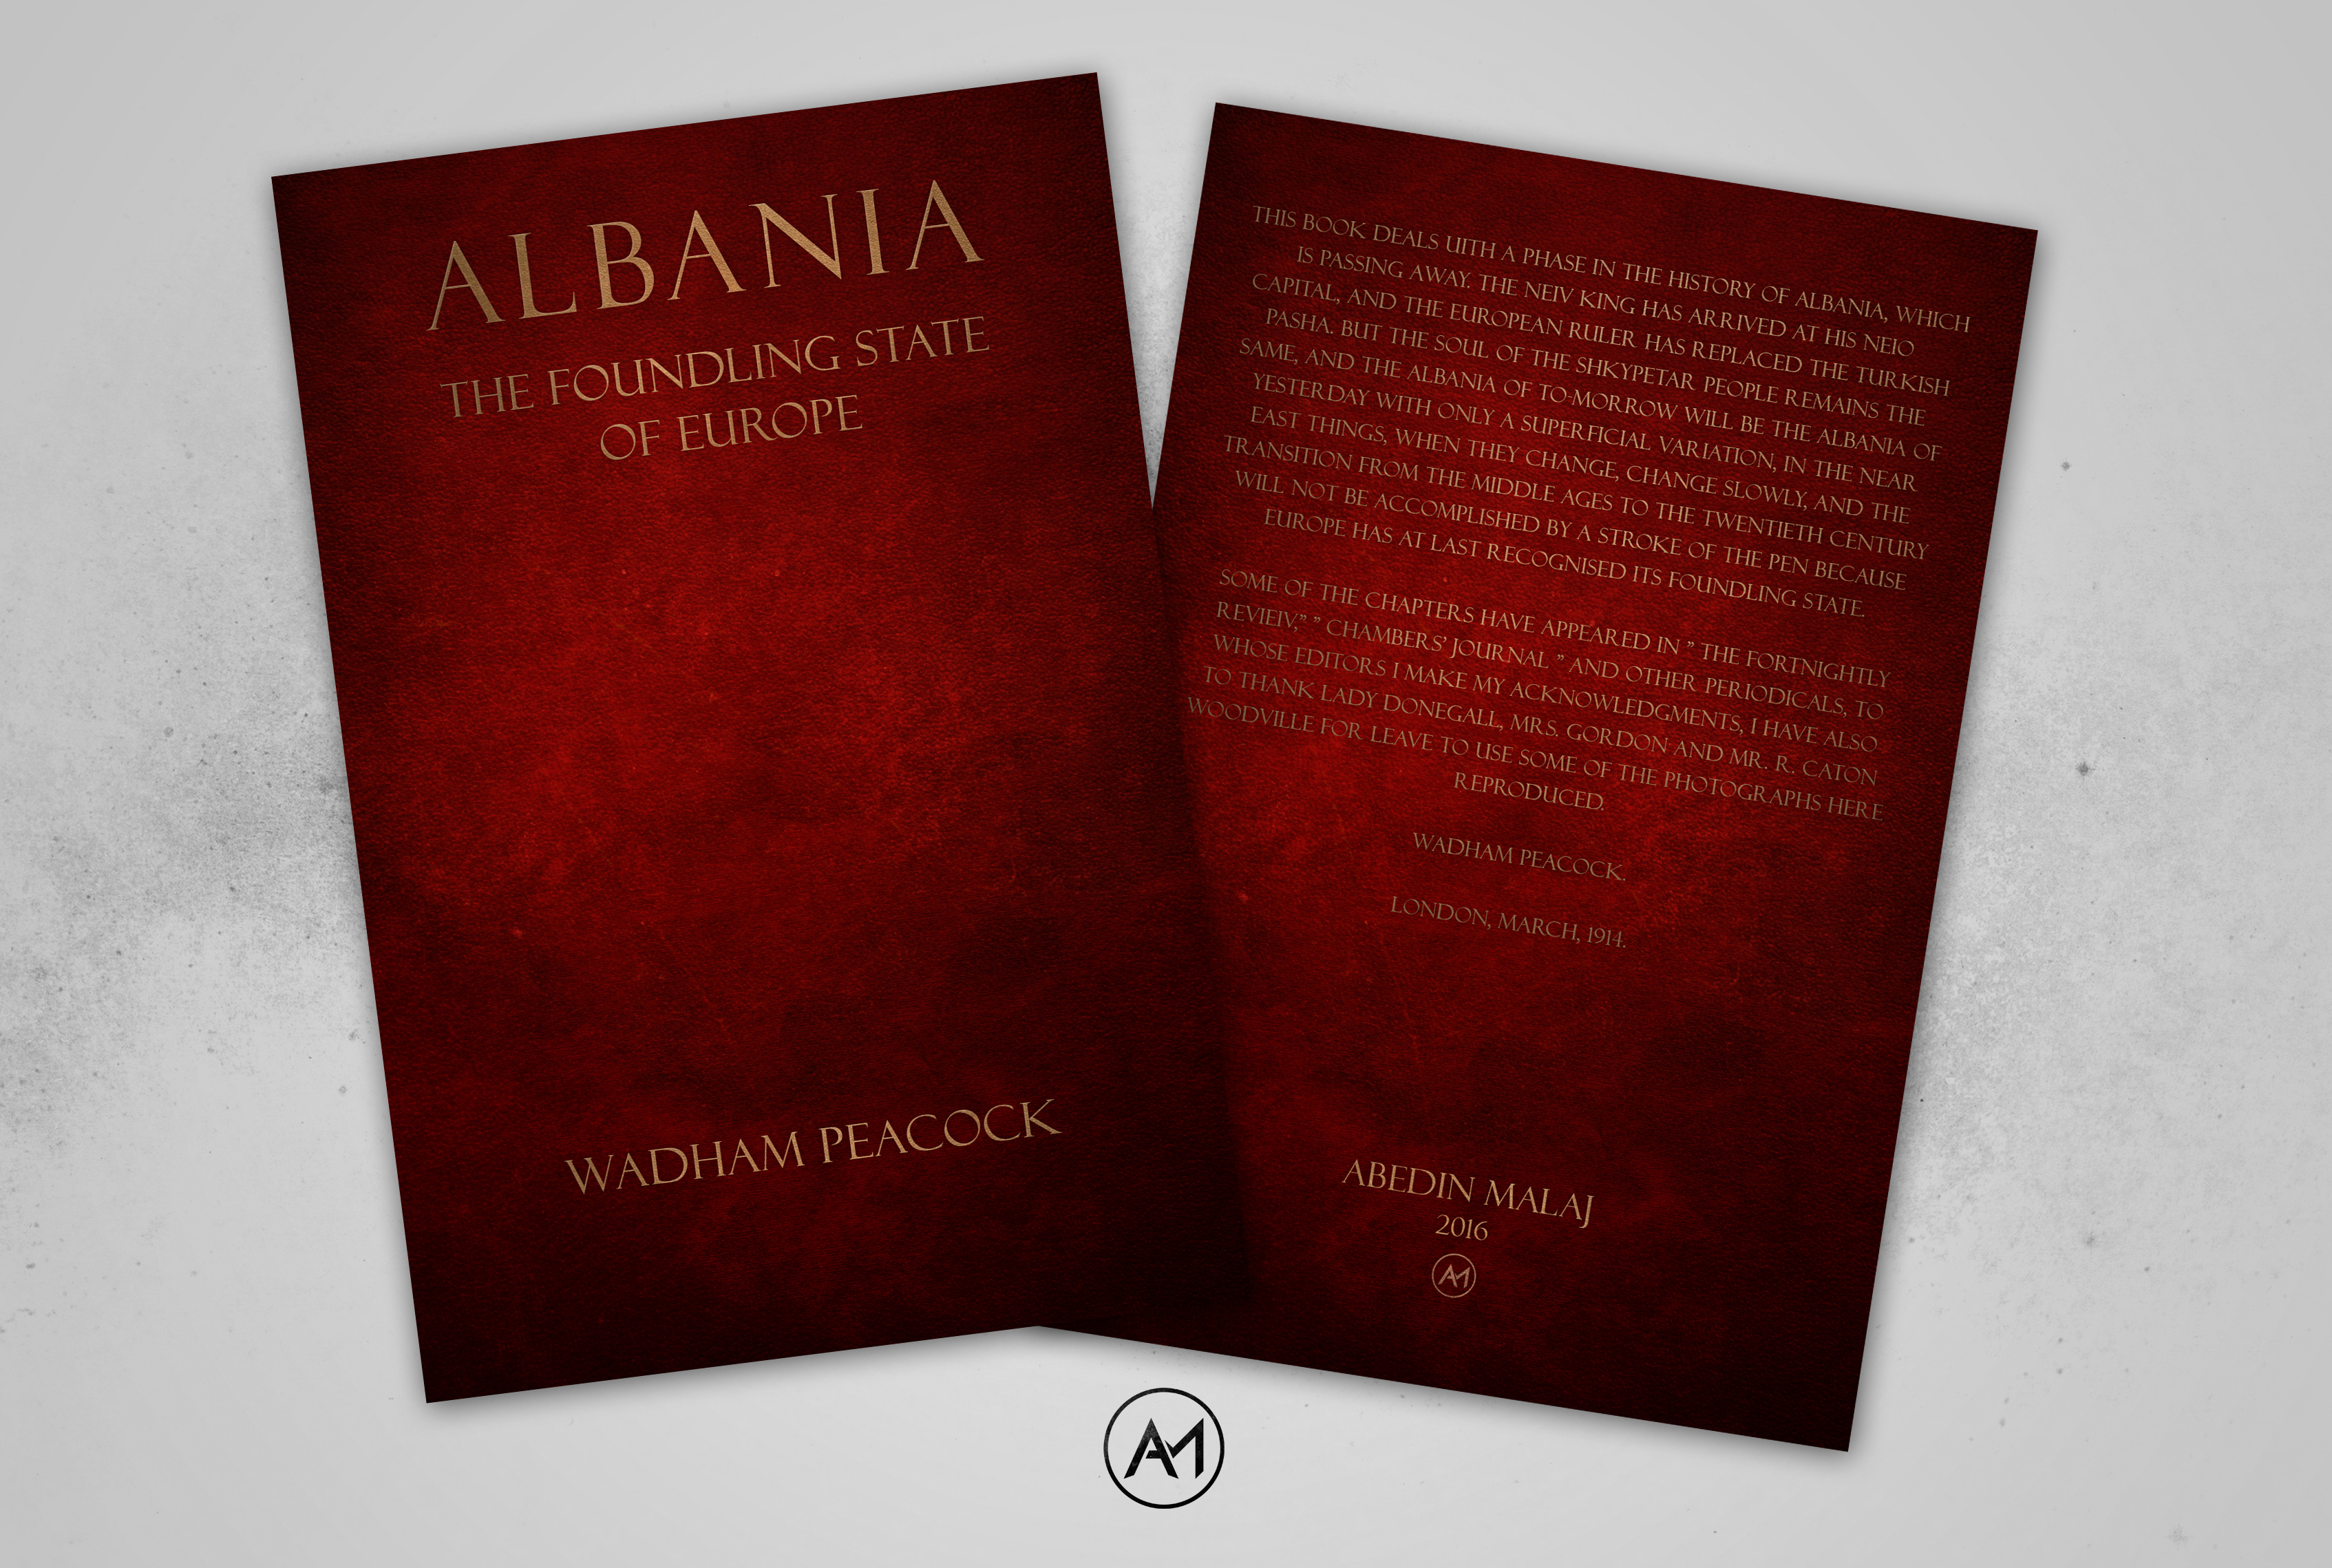 Albania The Foundling State Of Europe Book Covers by AbizZ on DeviantArt